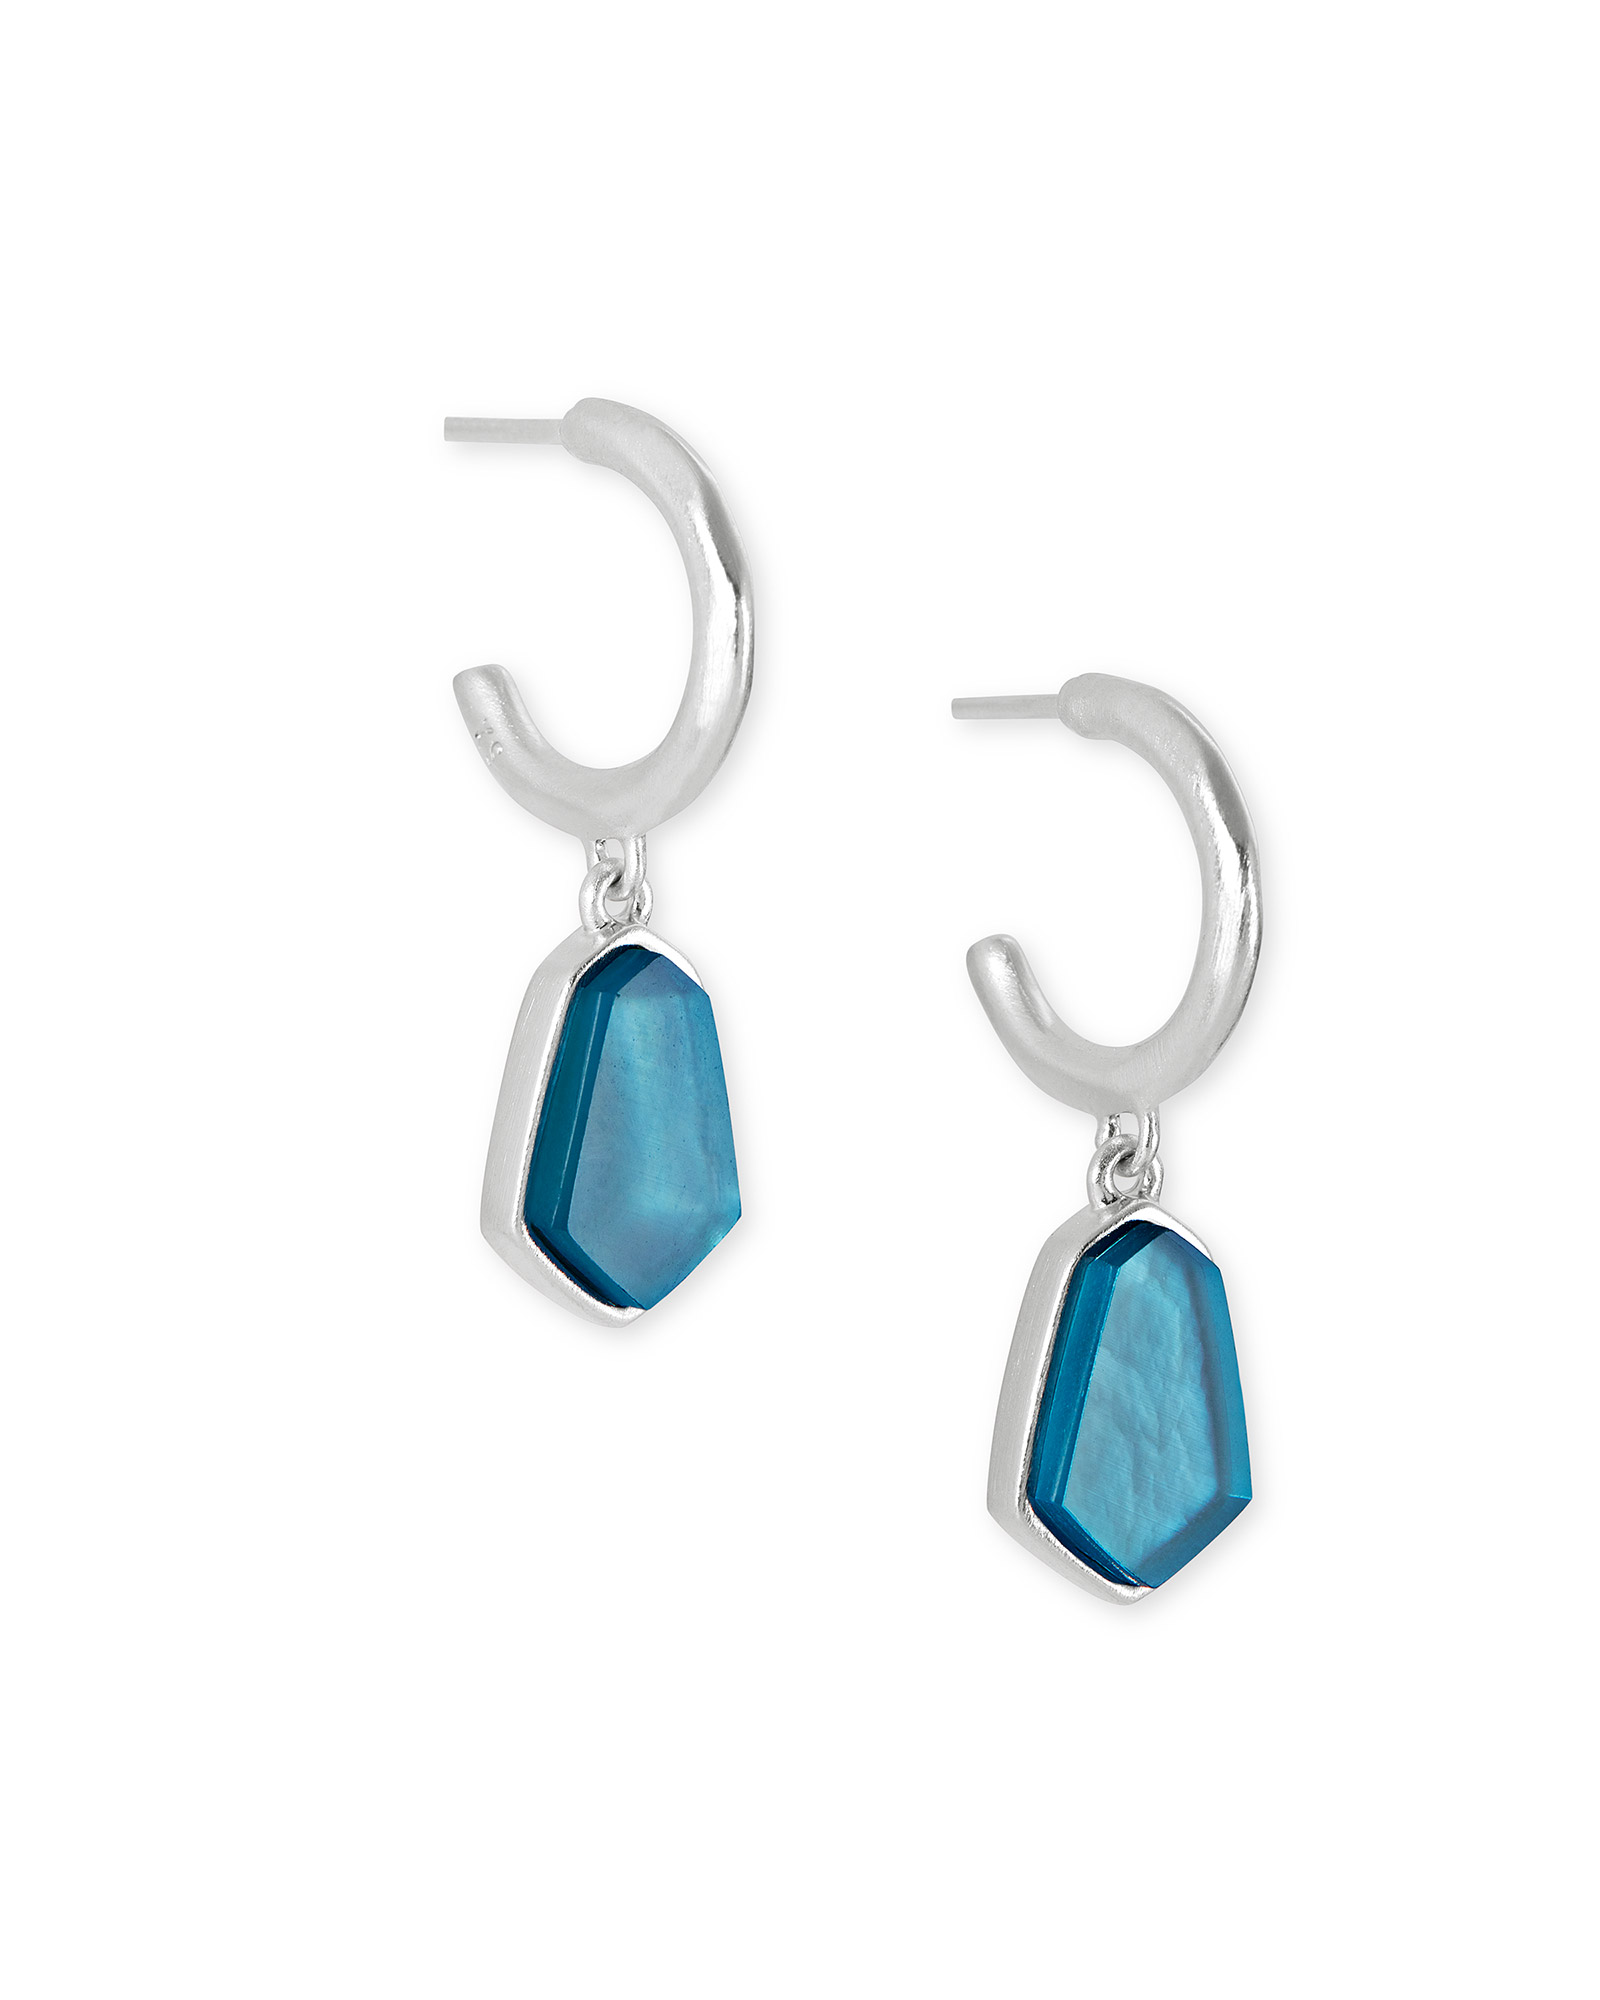 Clove Silver Huggie Earrings in Peacock Blue Illusion